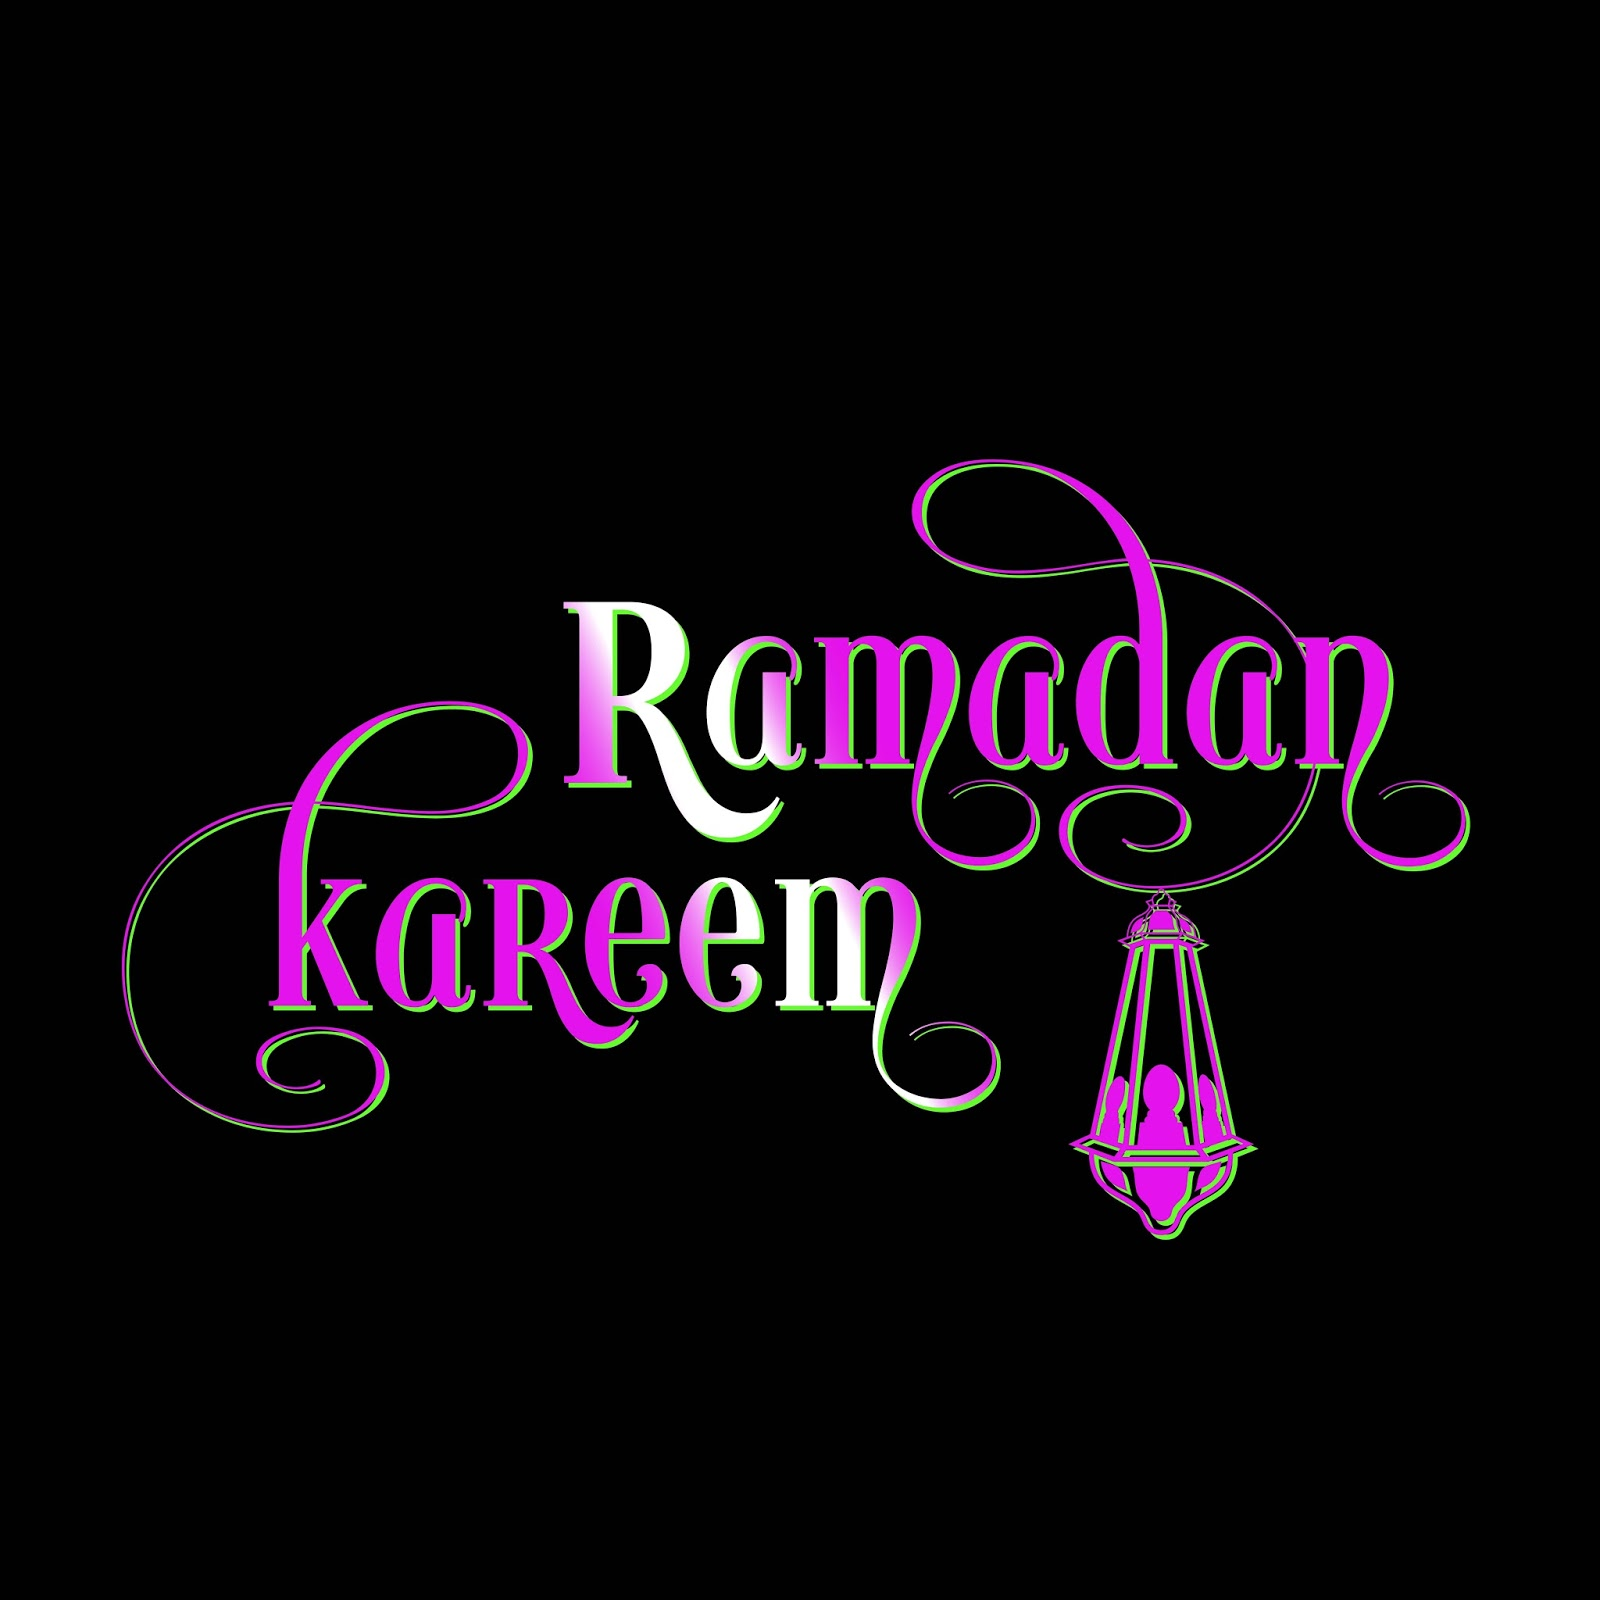 Ramadan Mubarak 2016 Wallpaper All Best Desktop Wallpapers